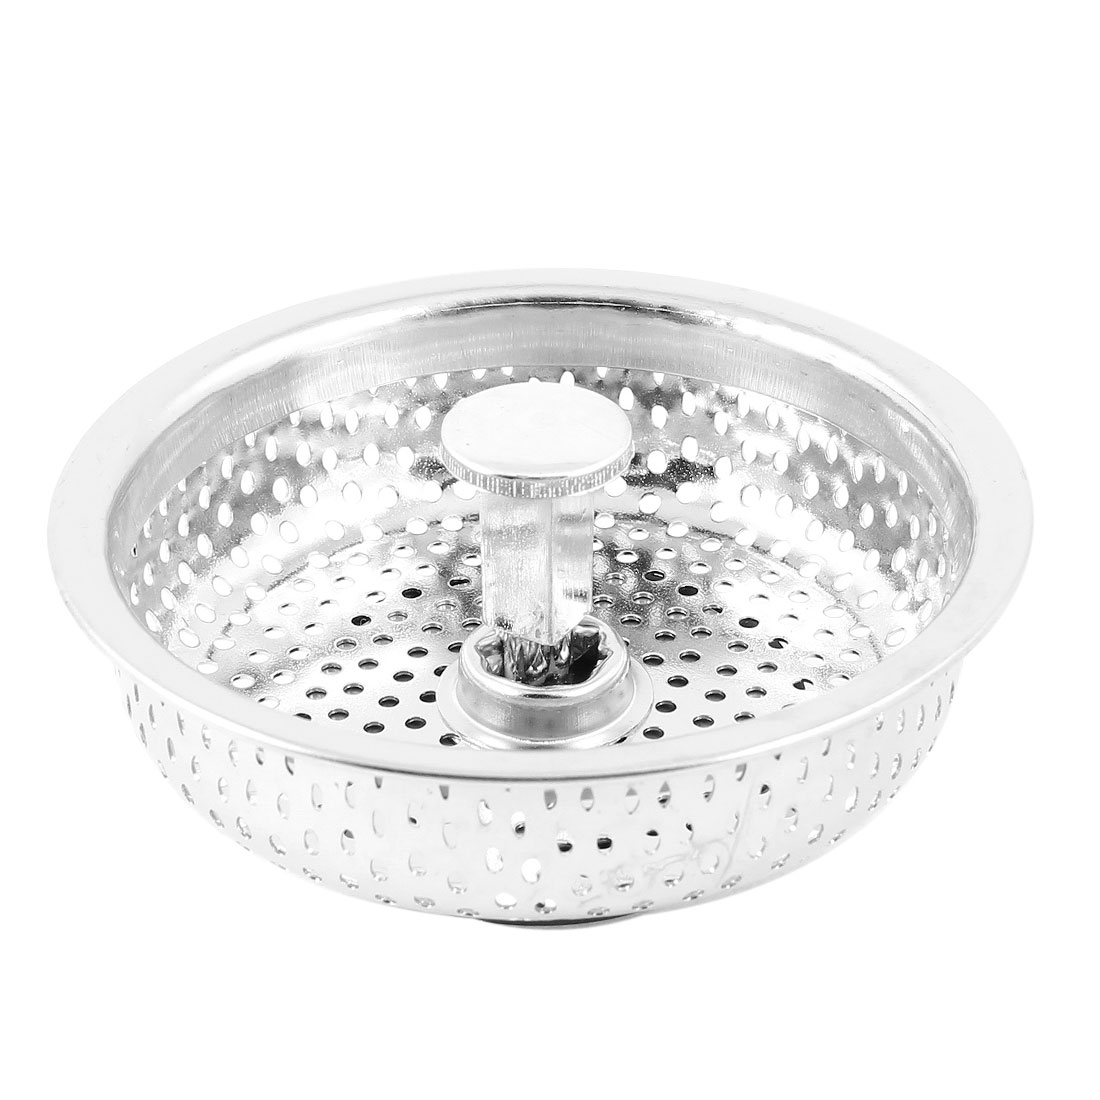 Unique Bargains Kitchen Basin Stainless Steel Drain Sink Strainer Basket Stopper Plug